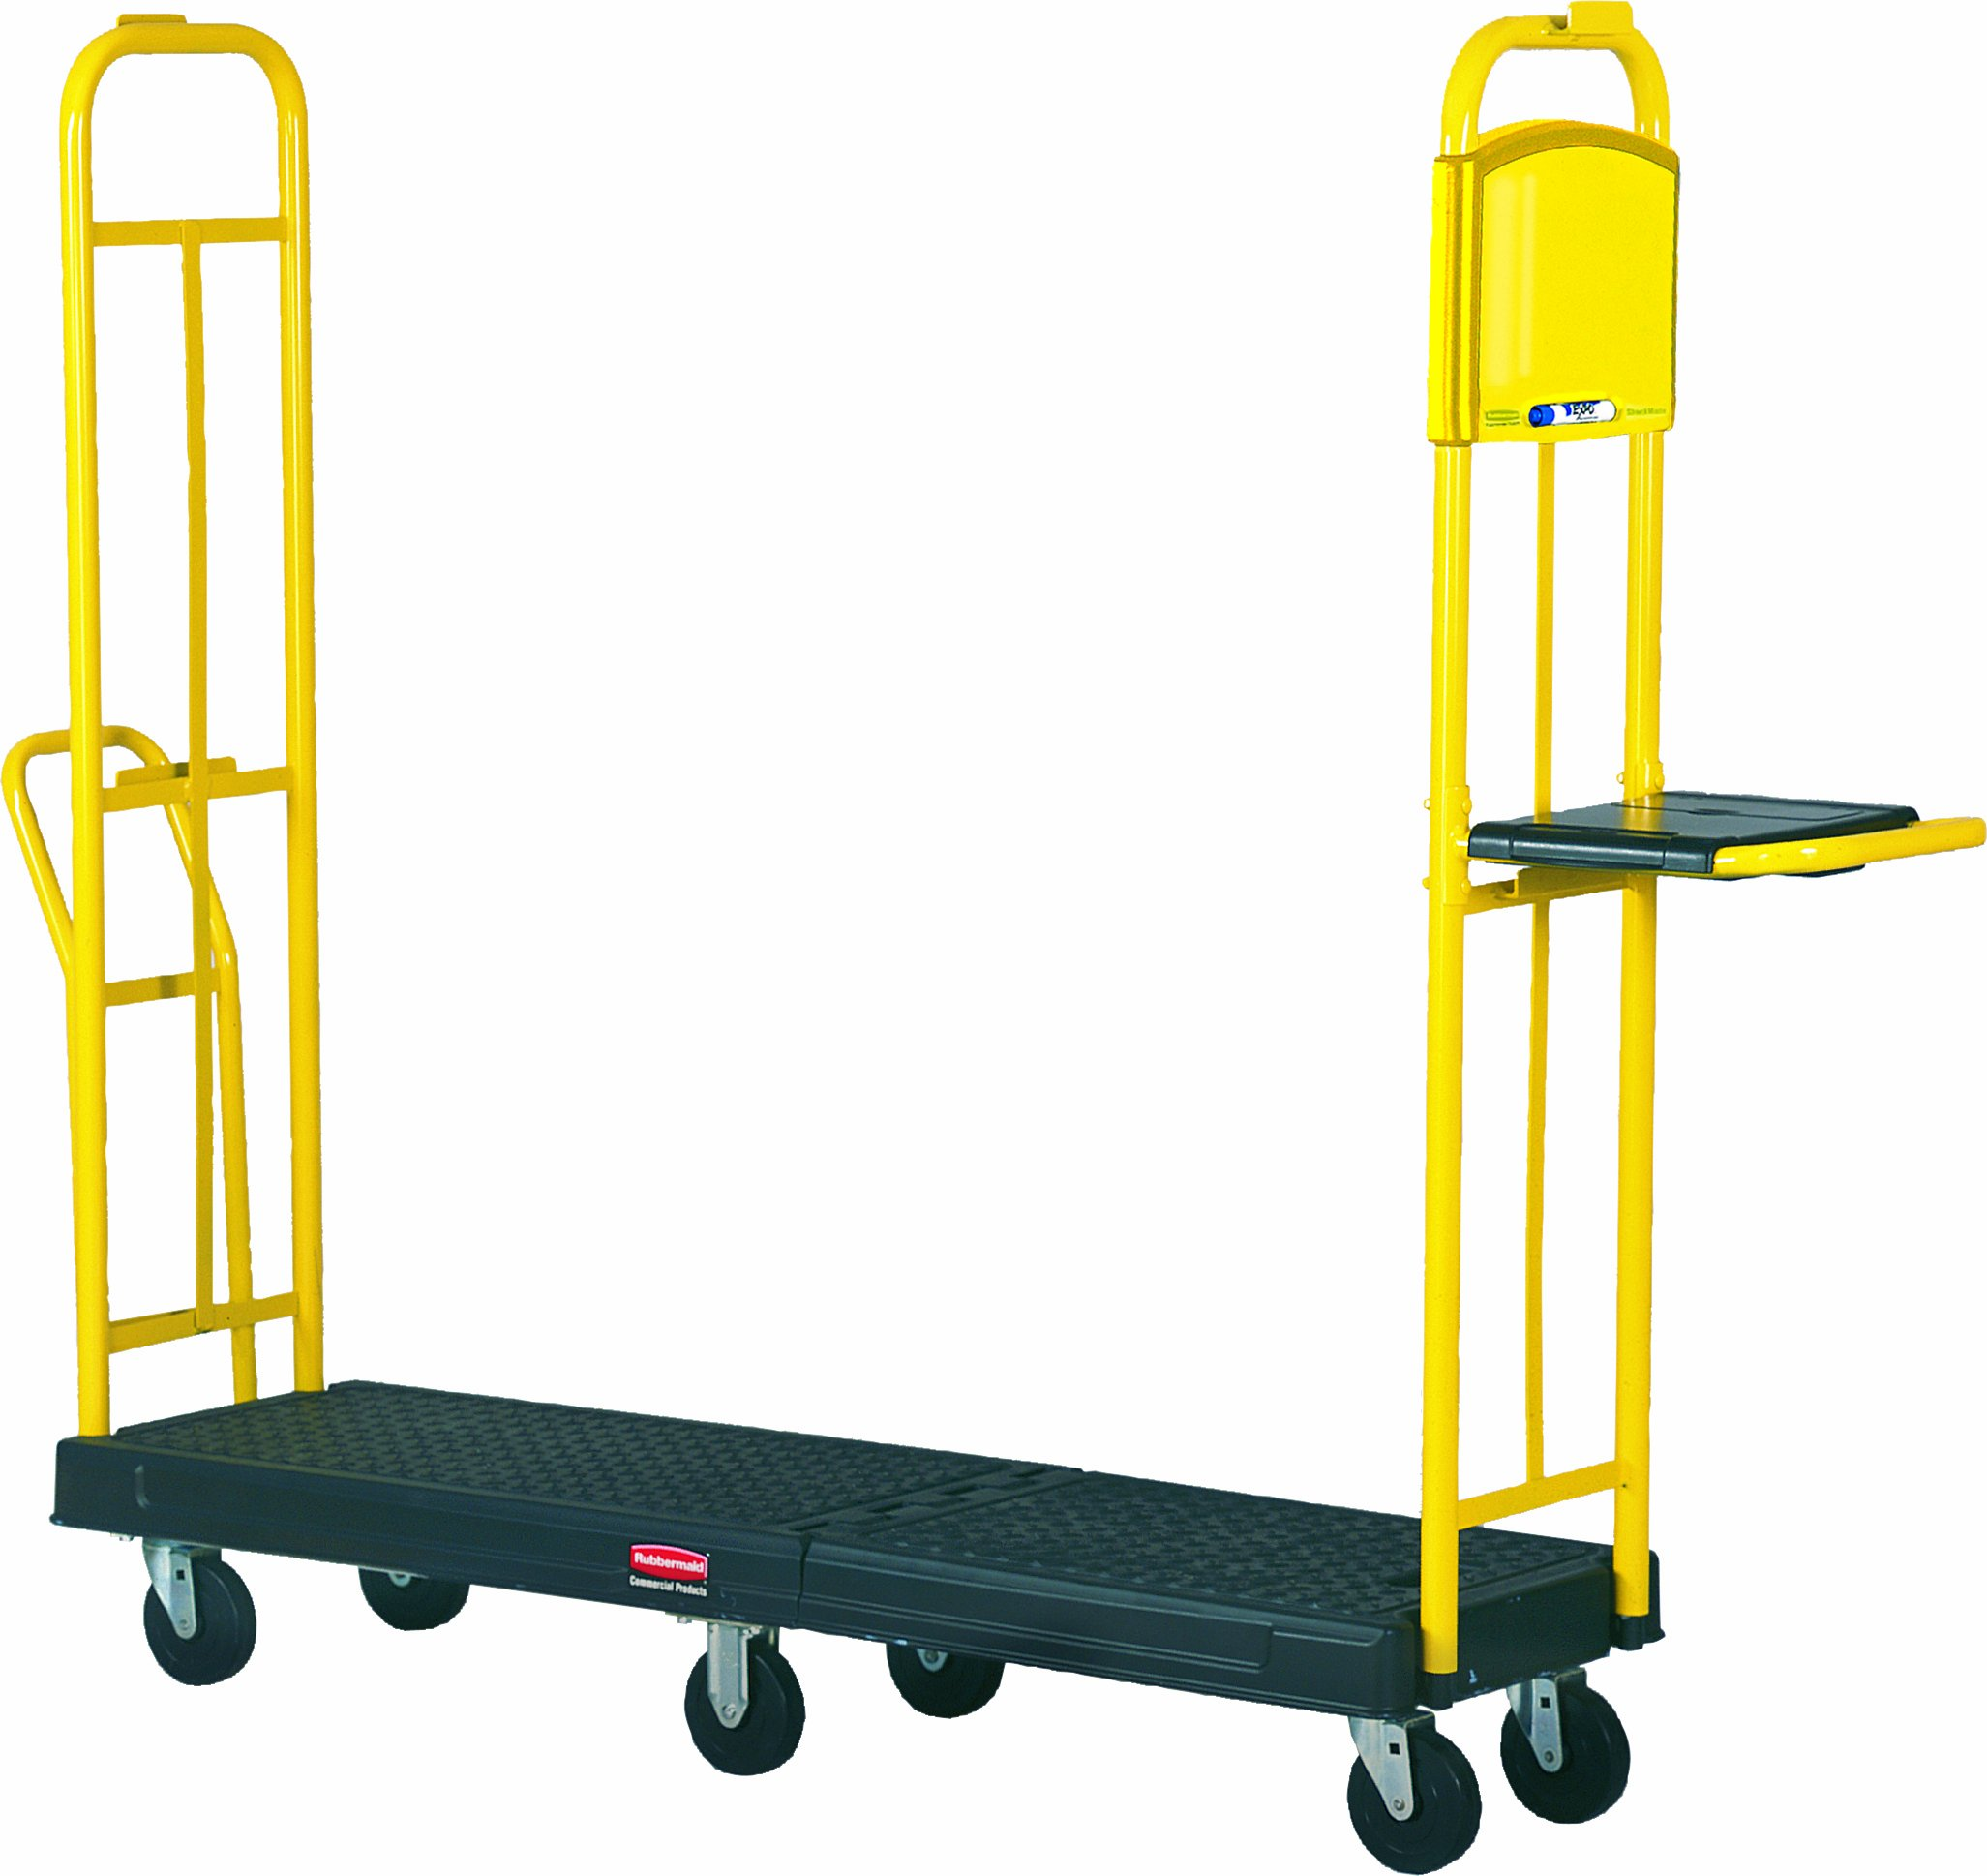 Rubbermaid Commercial FG9T4500BLA StockMate ES Restocking Platform Truck with Hinging Deck, 1800-Pound Capacity, Black